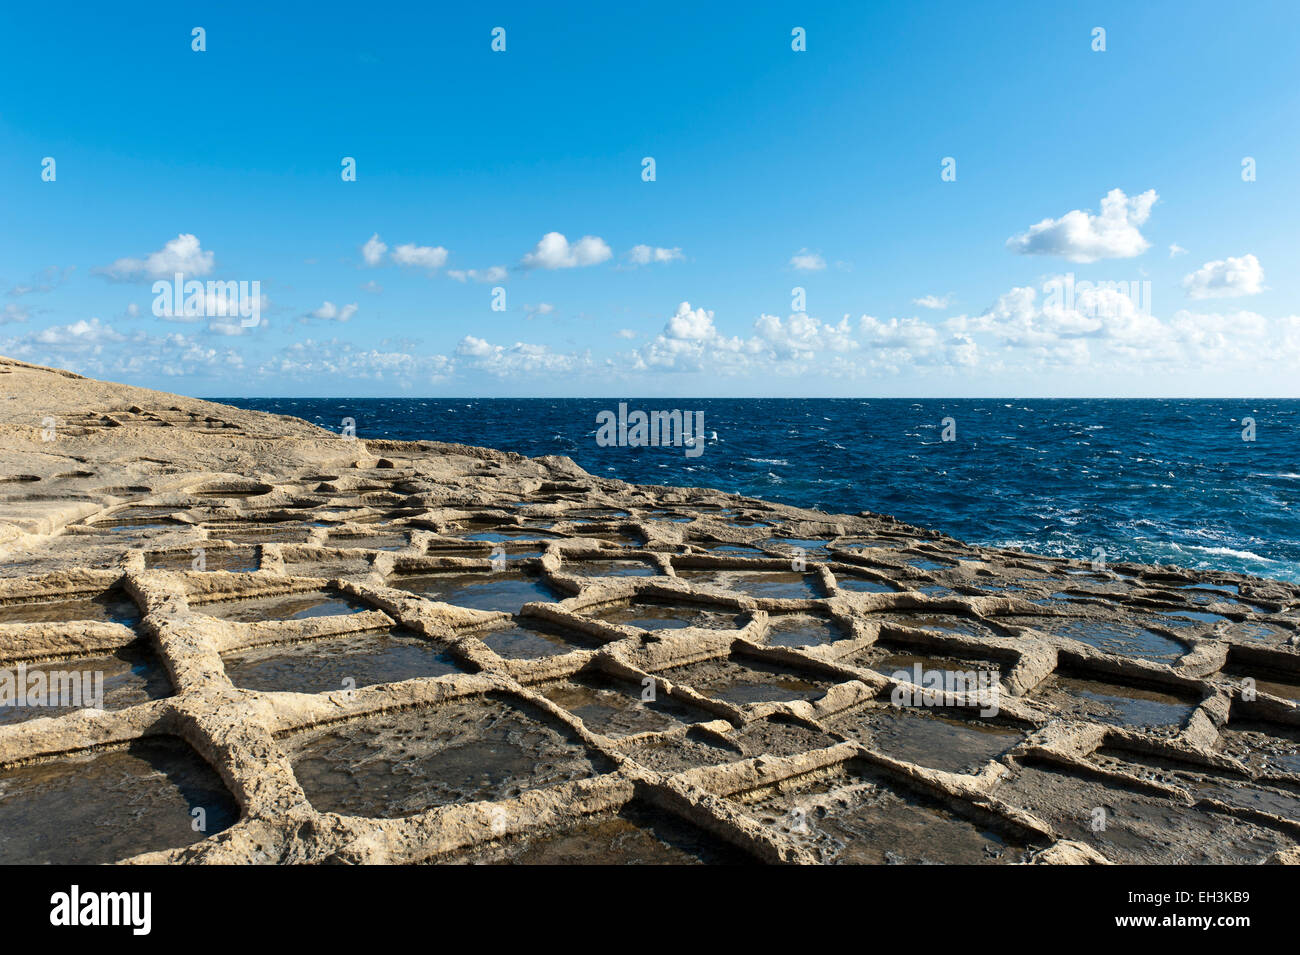 Sandstone formations on the coast, sea salt extraction in salt pans, Xlendi, Gozo, Malta - Stock Image